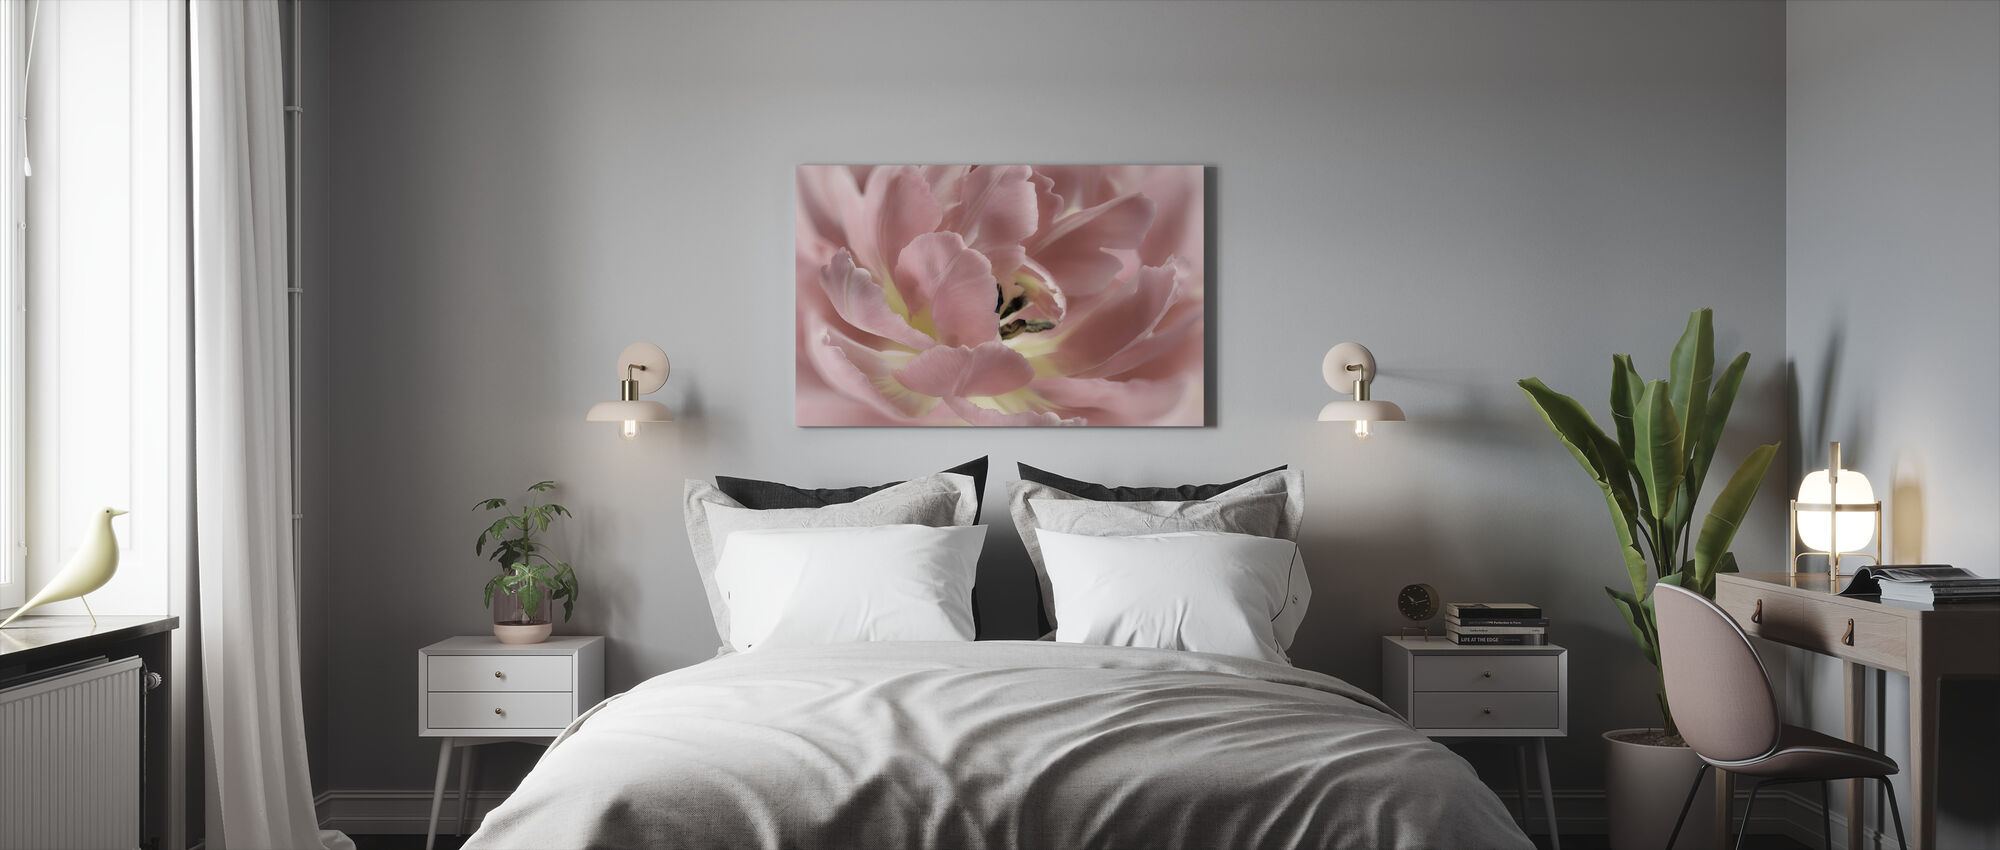 Tulip Cake - Canvas print - Bedroom